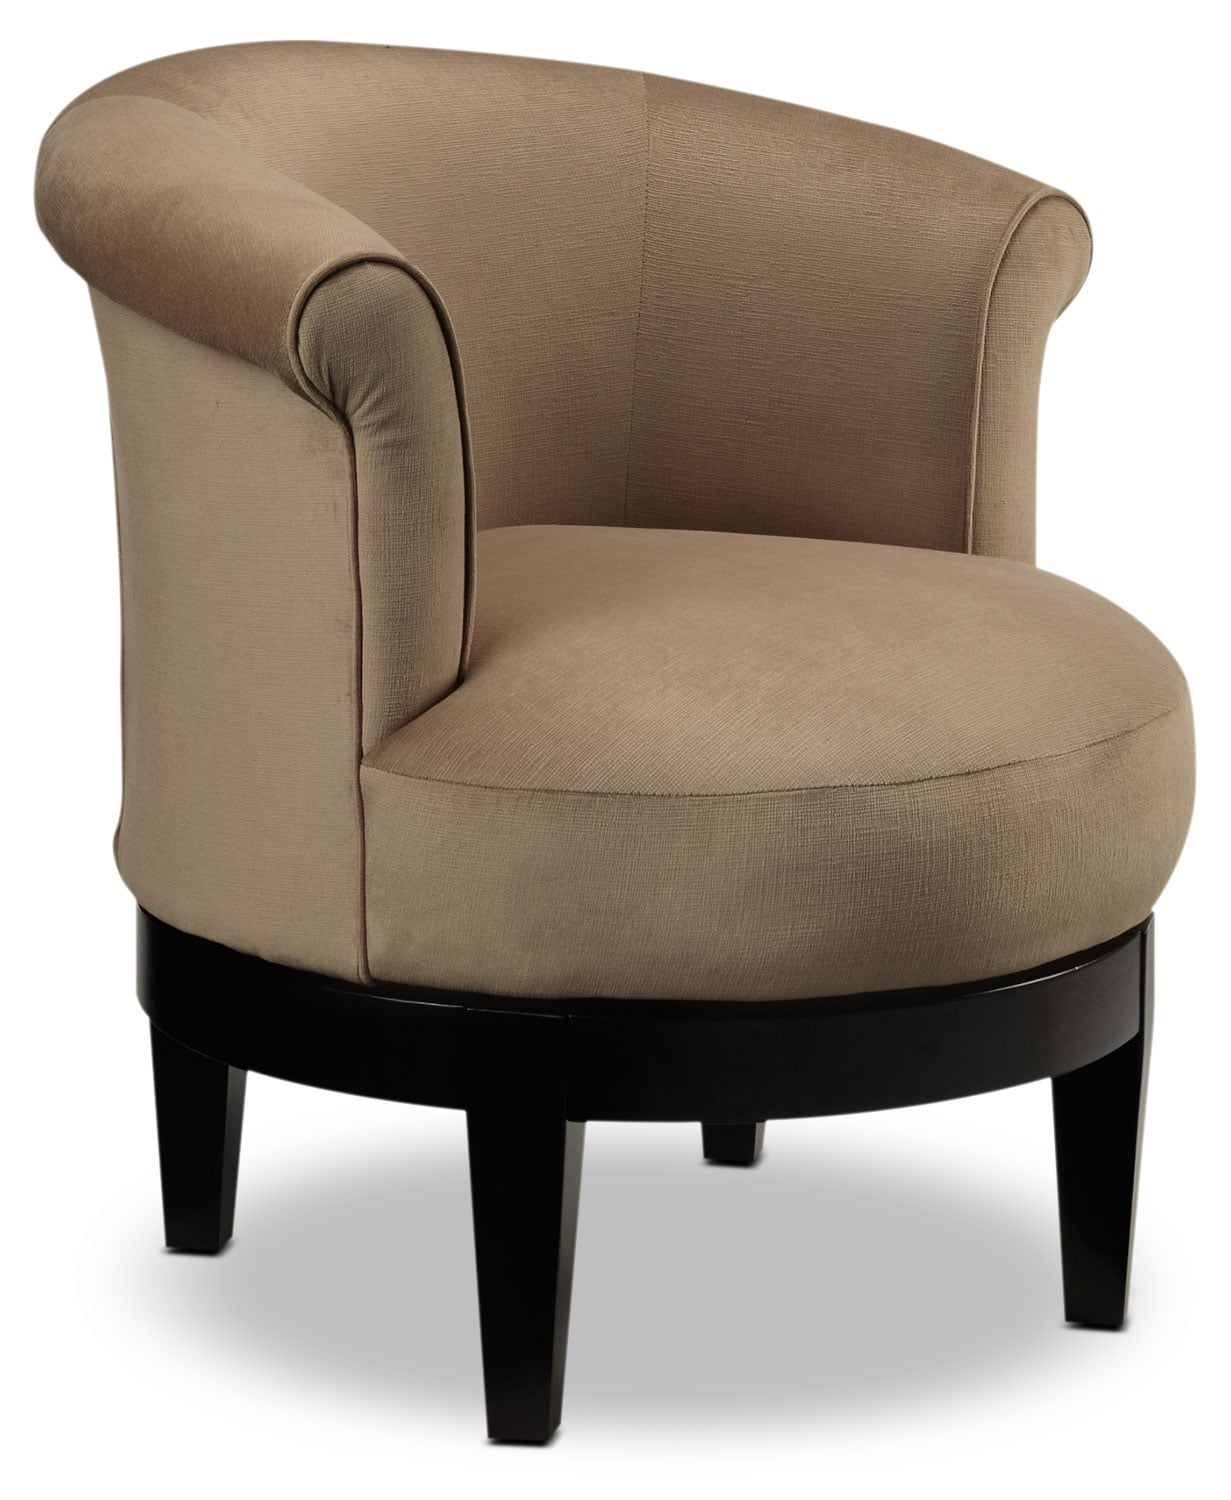 Living Room Furniture - Attica Swivel Accent Chair - Coffee